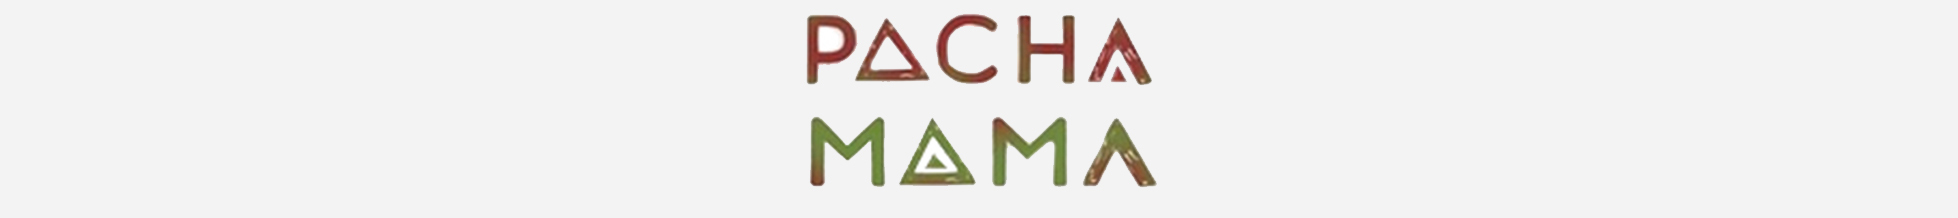 pacha-mama-category.jpg